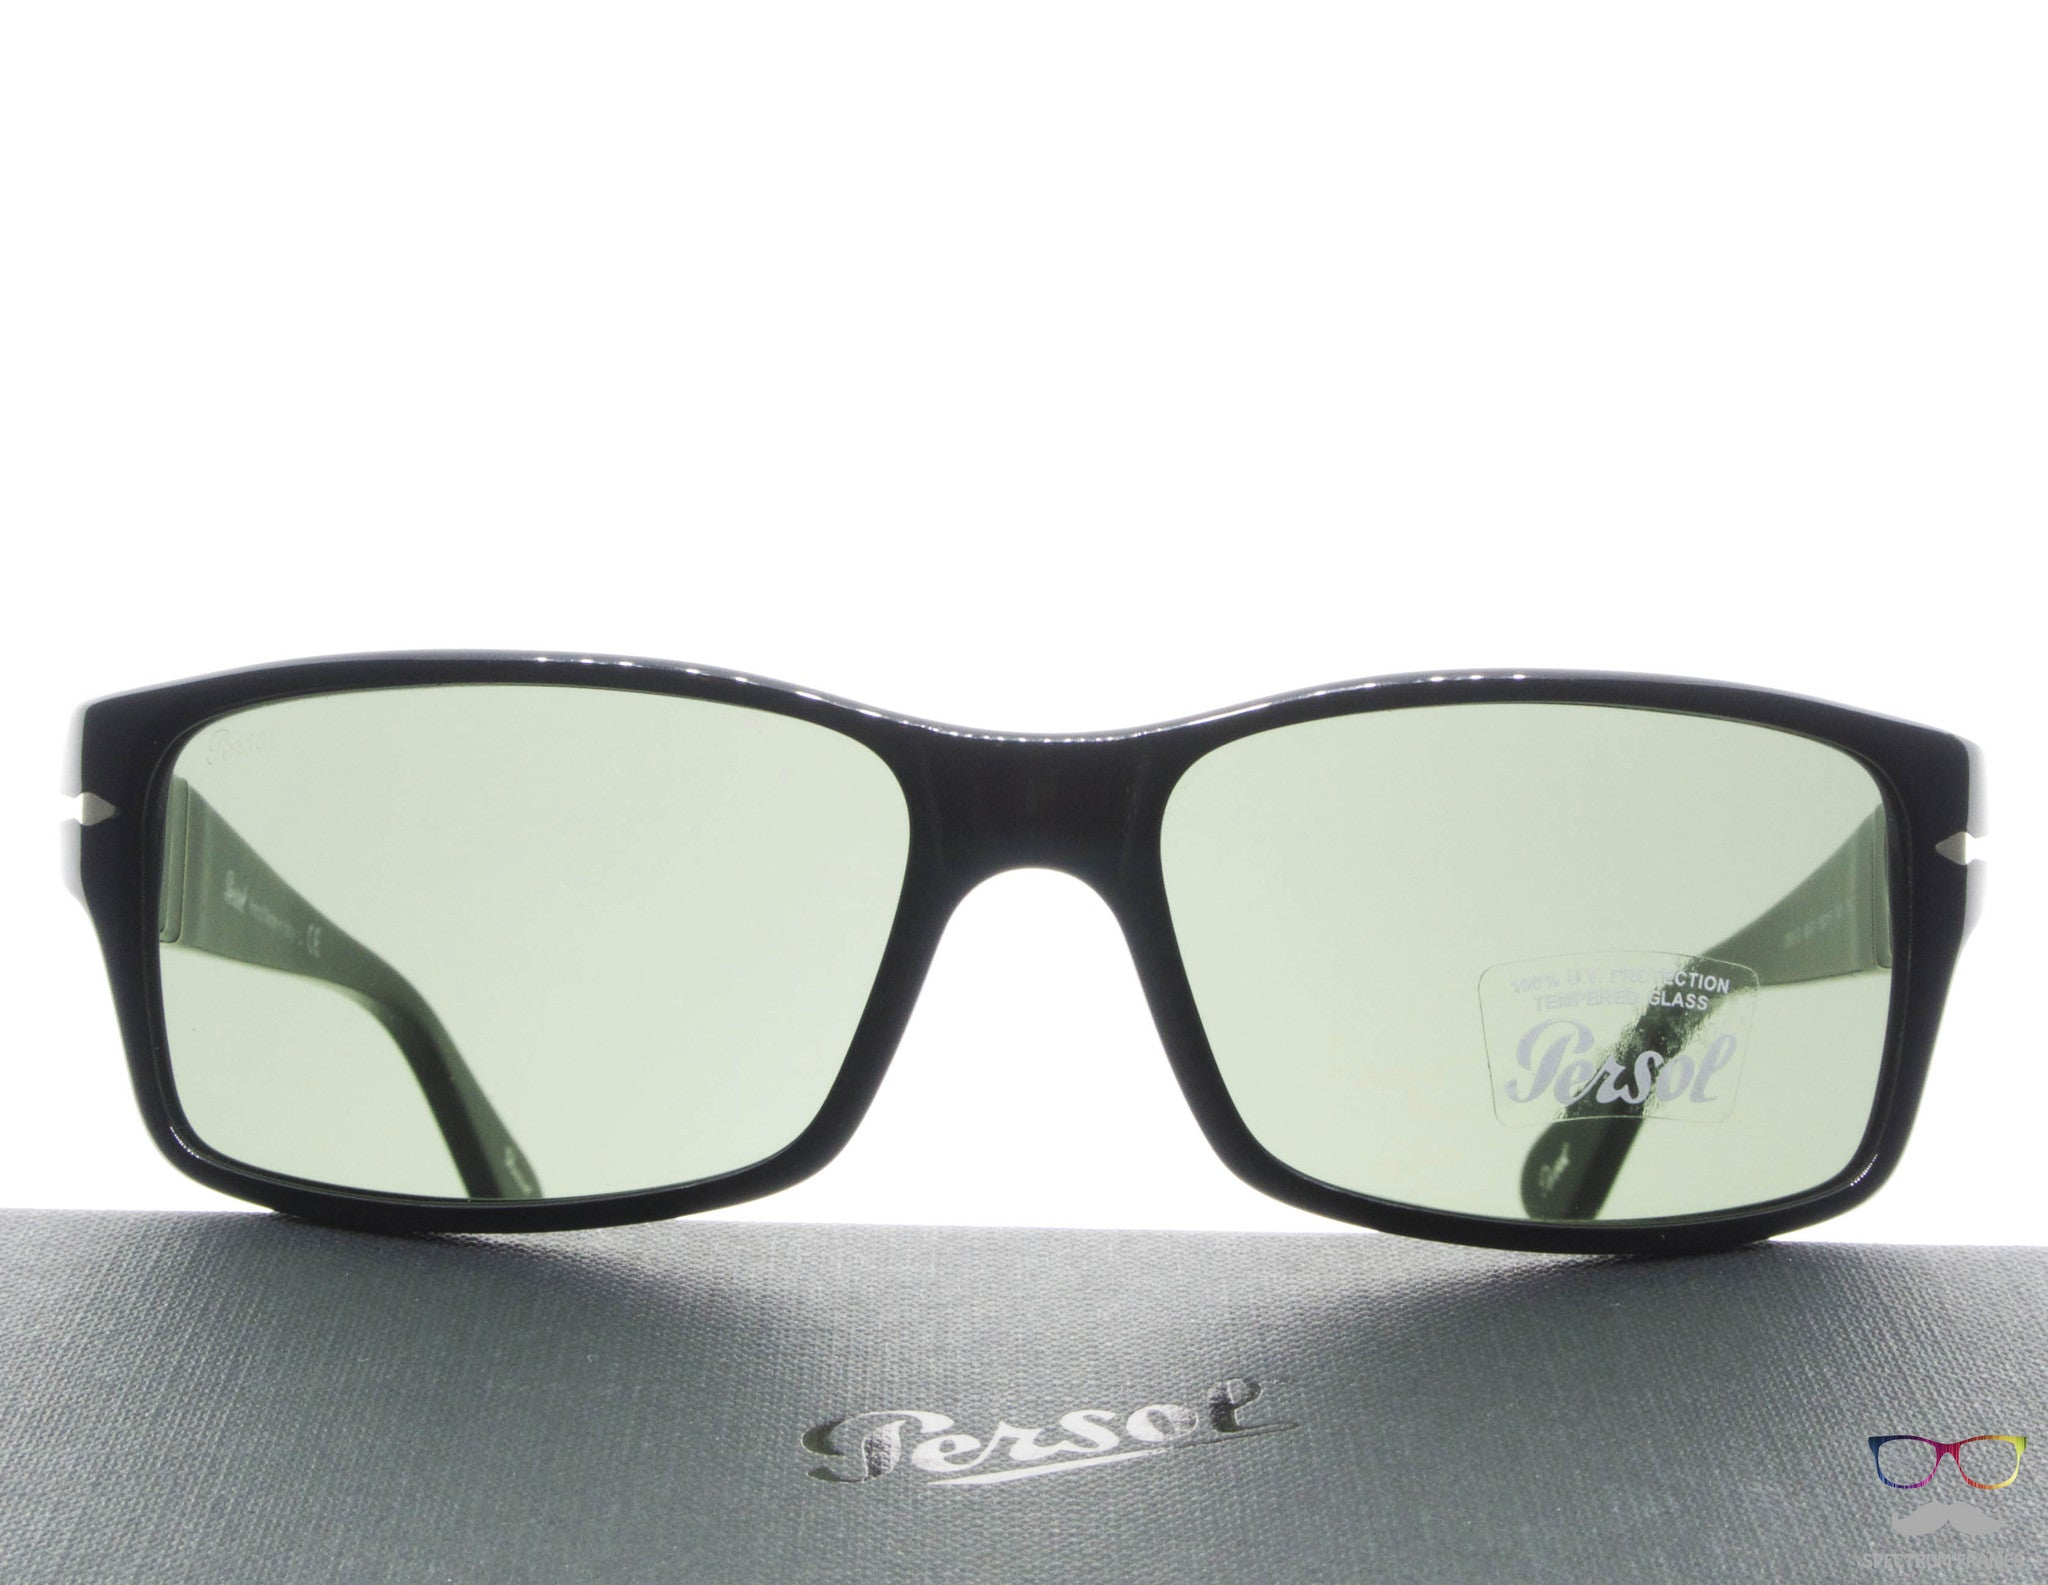 95a7a1ca47 Persol Sunglasses 2803S 95 31 Black with Green Lenses Size 58